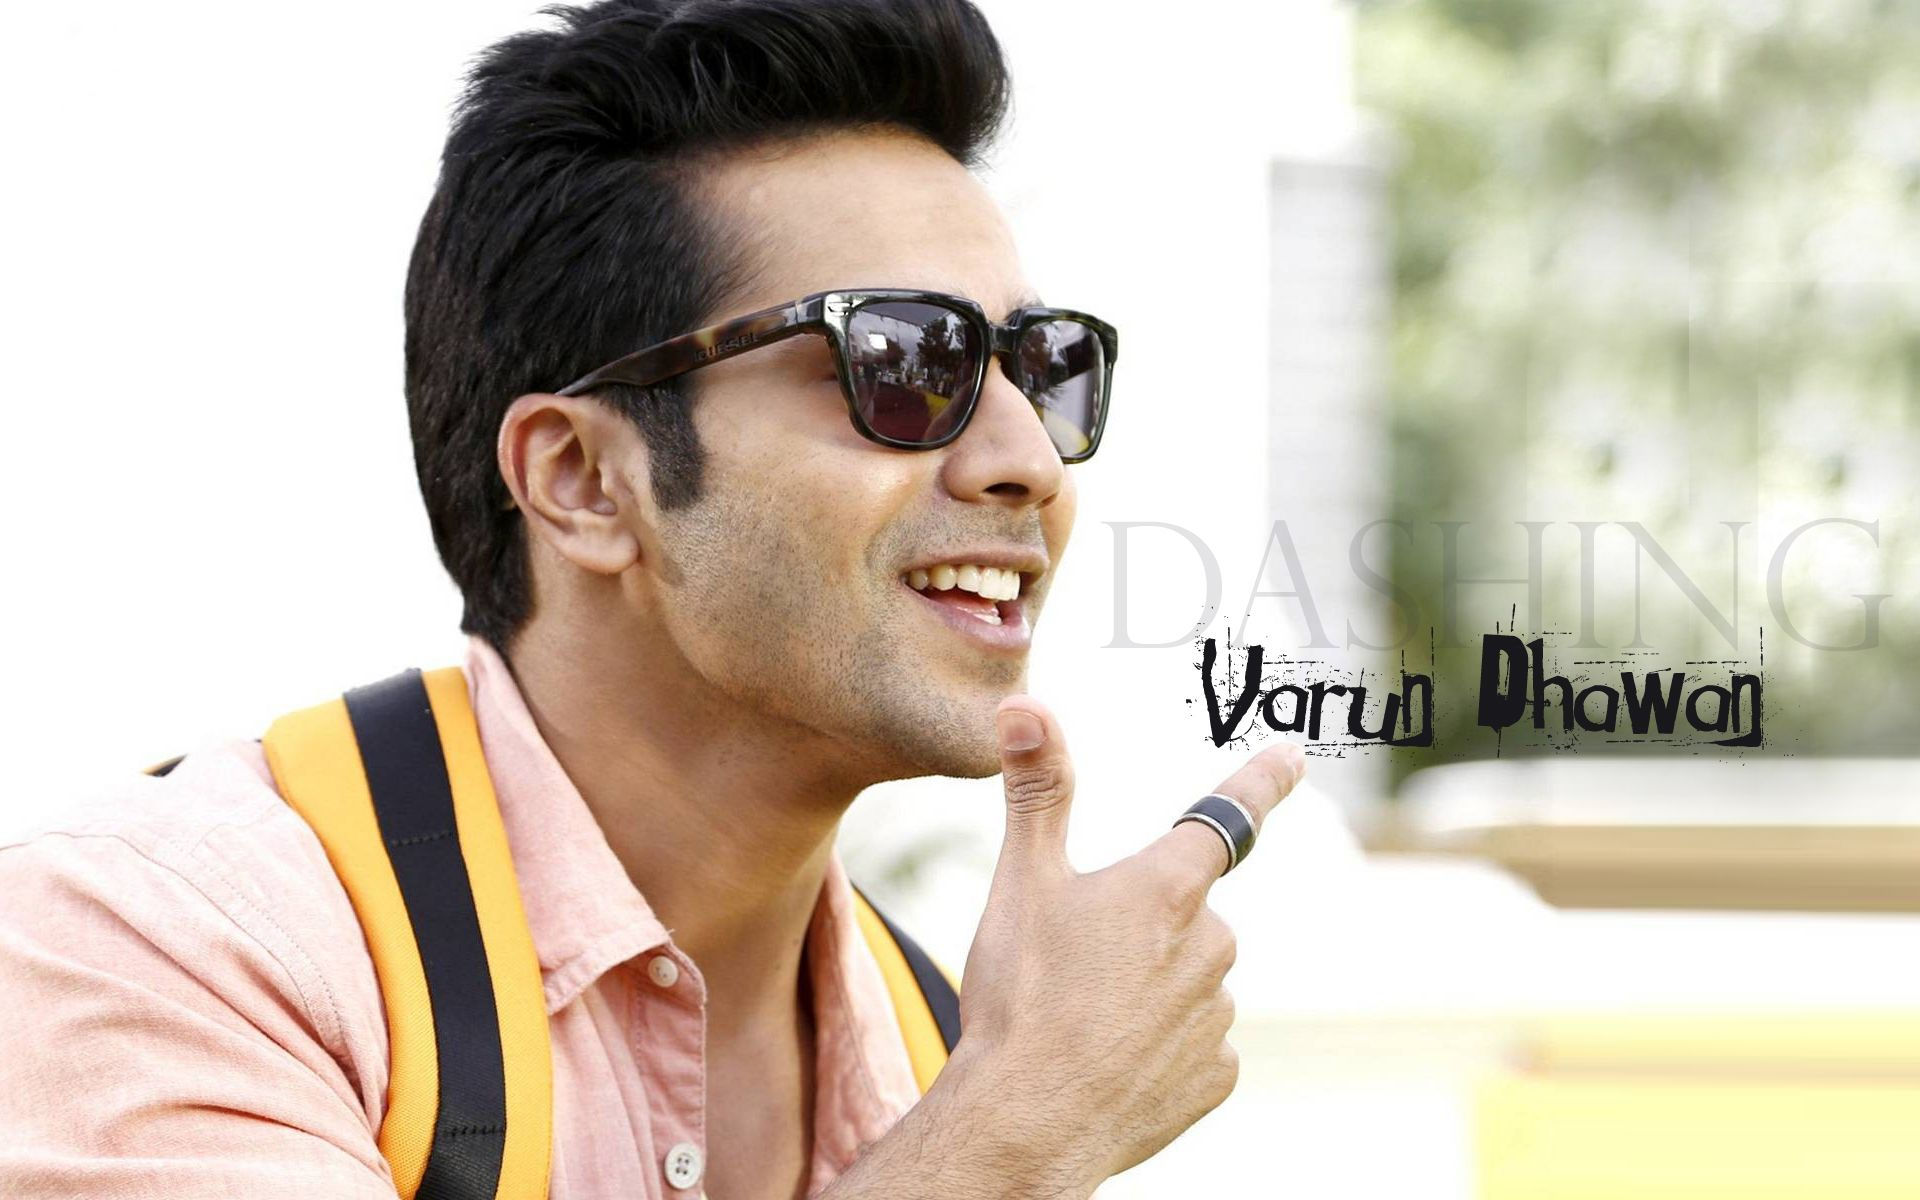 Varun Dhawan Hd Wallpaper In 1080p Varun Dhawan Bollywood Actor